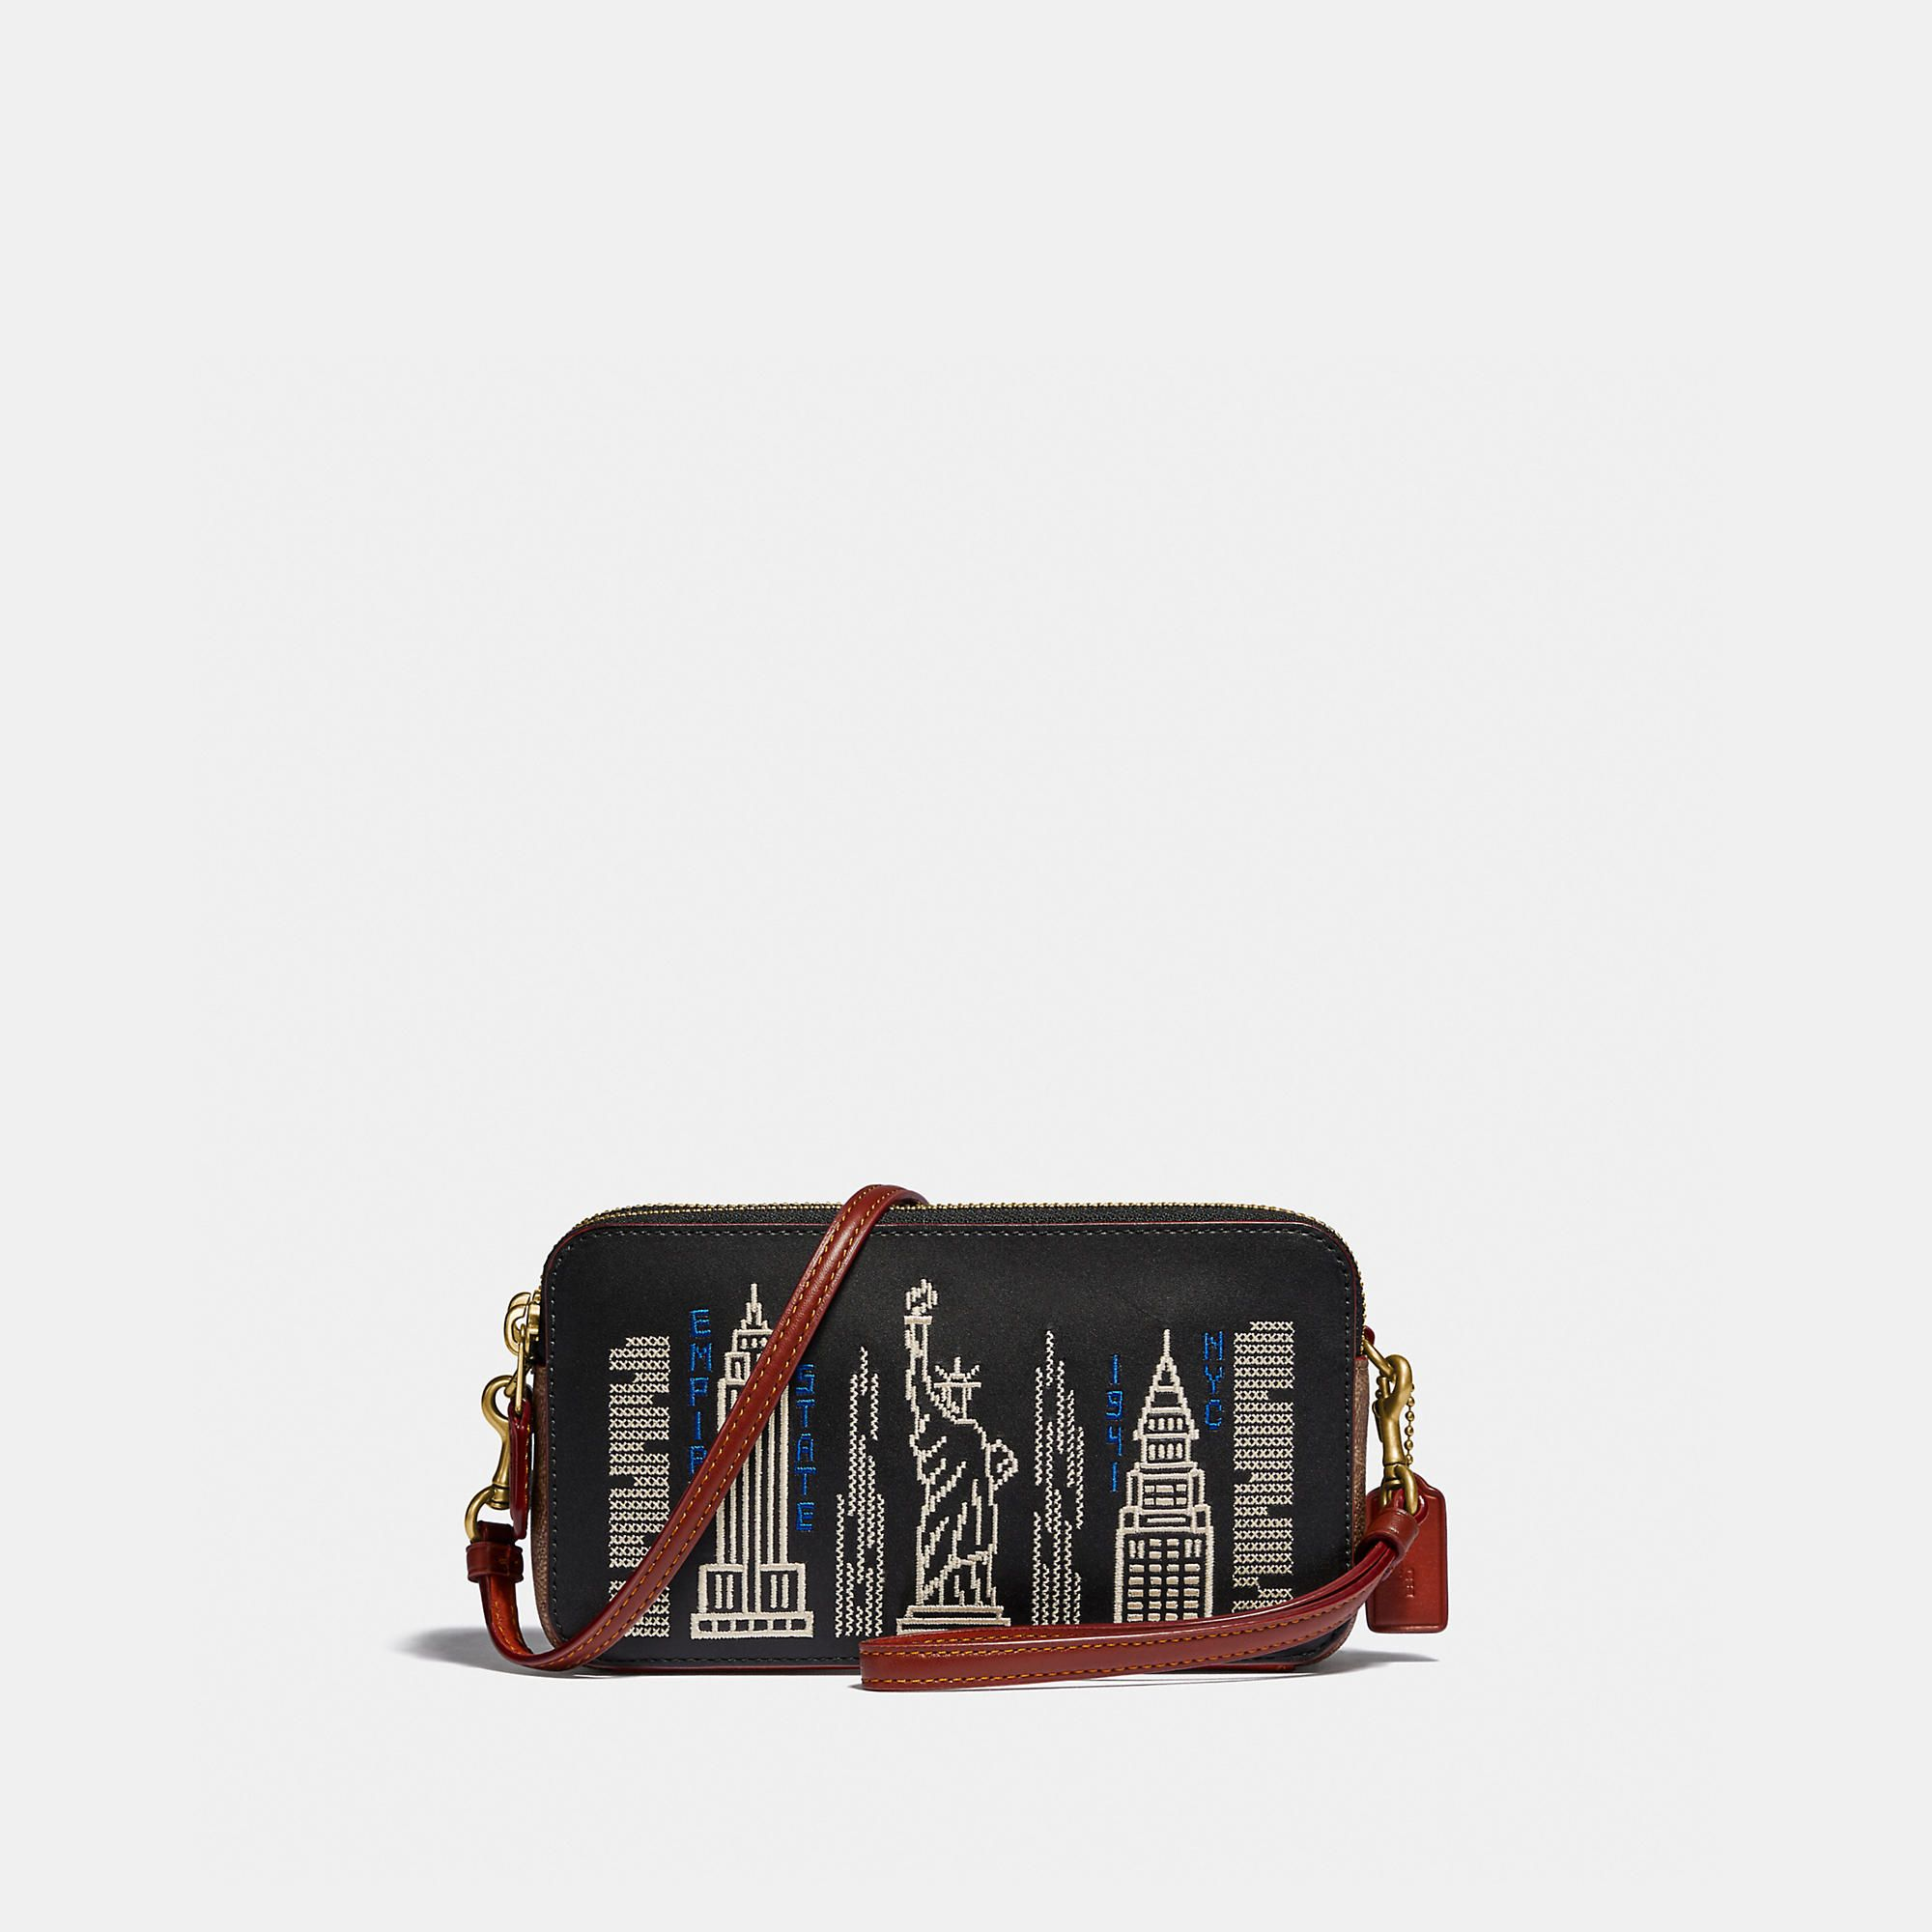 Coach Official Site Designer Handbags Wallets Clothing Menswear Shoes More Coach Coach Leather Crossbody